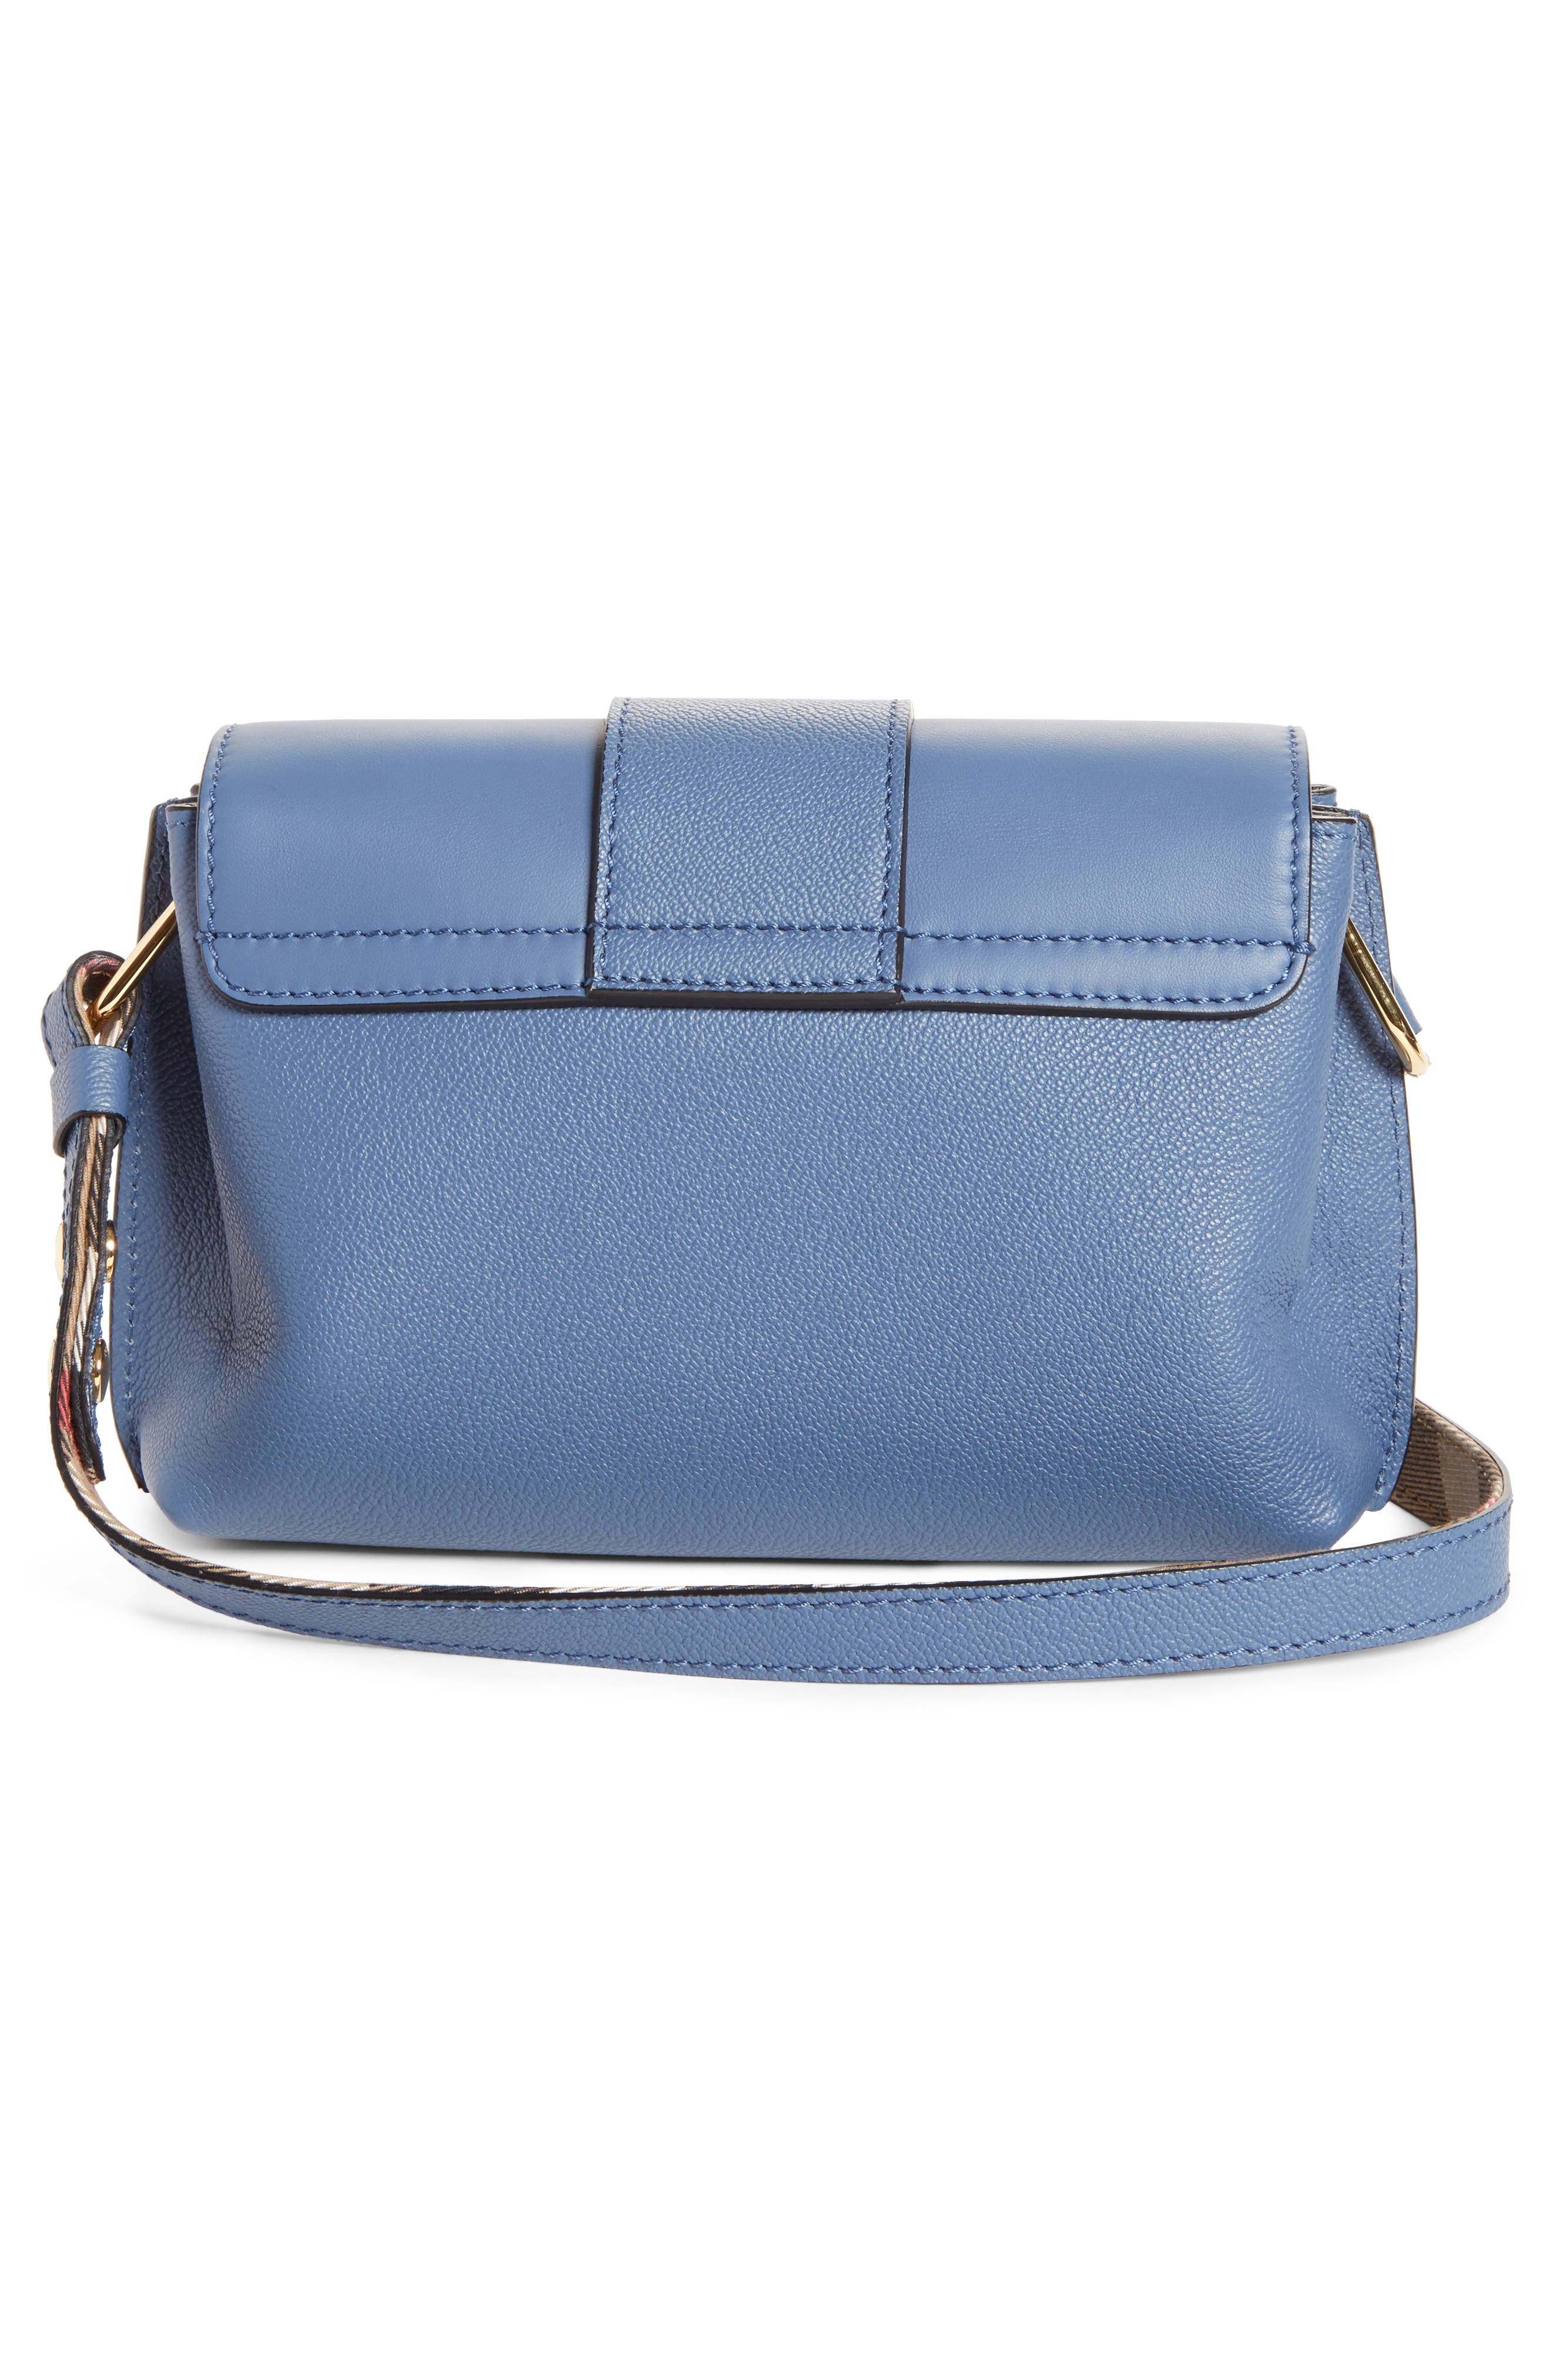 Small Buckle Leather Crossbody Bag,                             Alternate thumbnail 3, color,                             Slate Blue